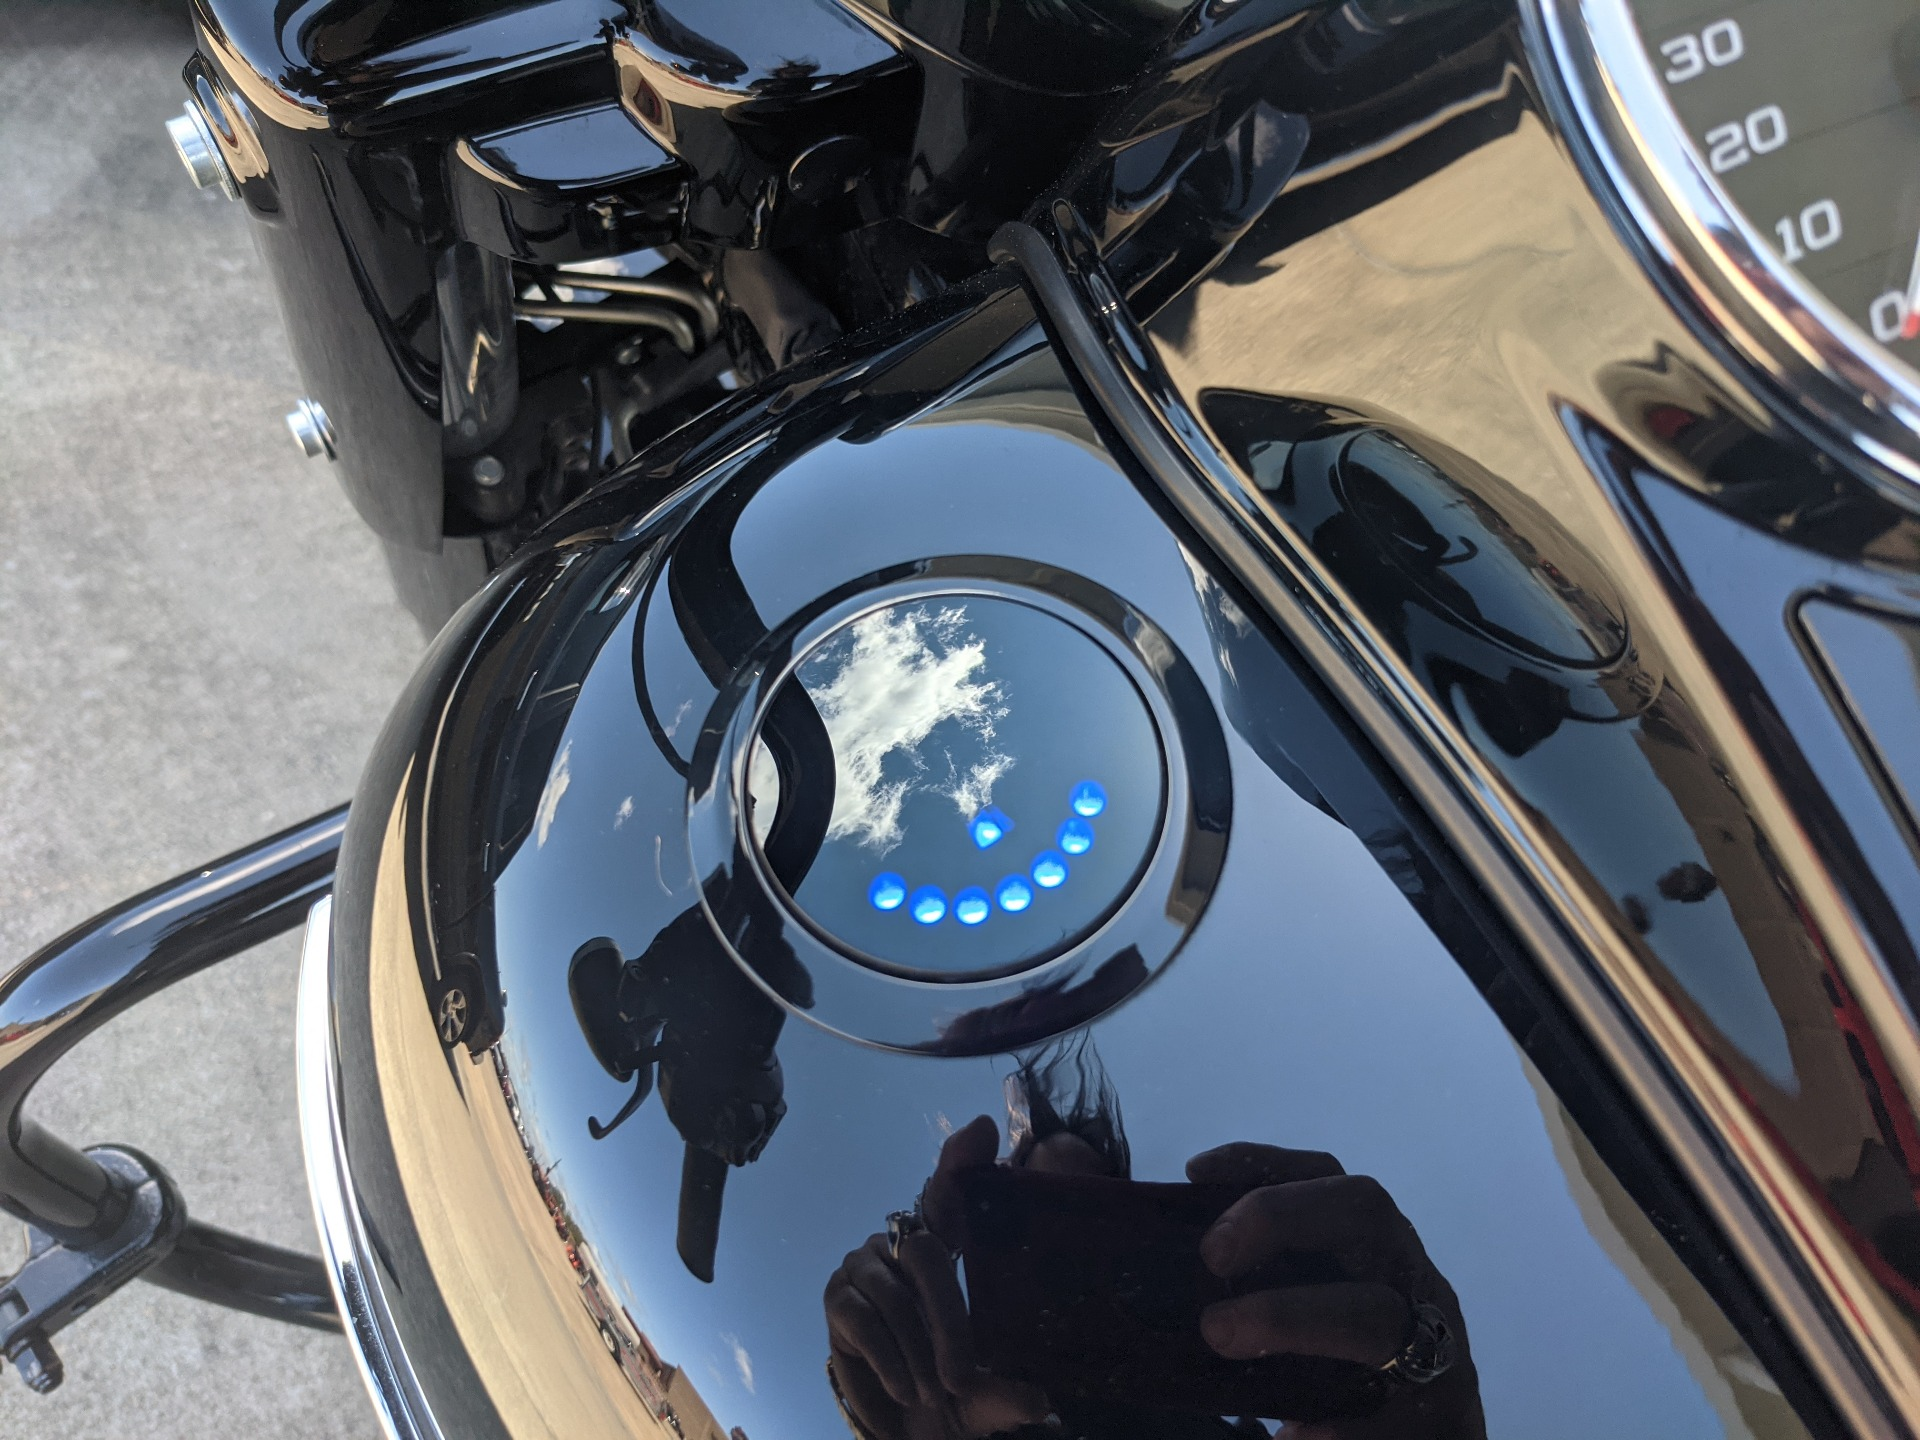 2018 Harley Road King Special For Sale - Photo 14